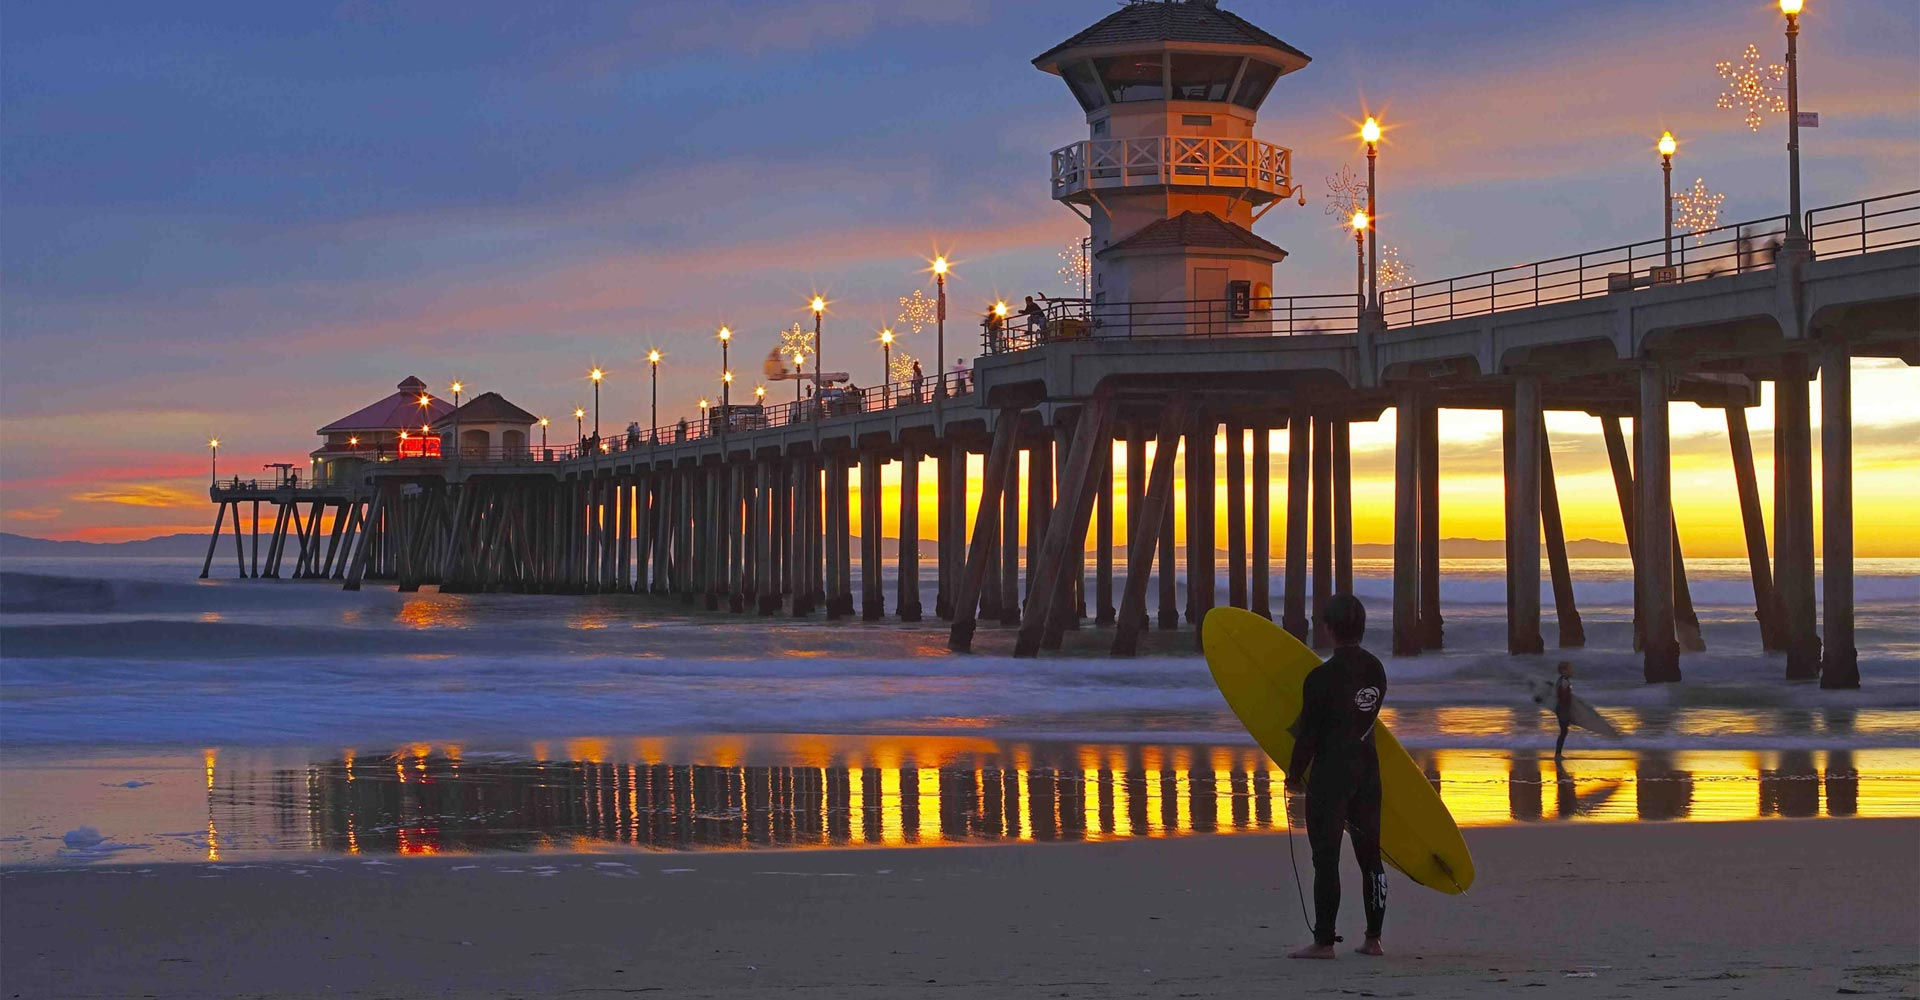 HuntingtonBeach